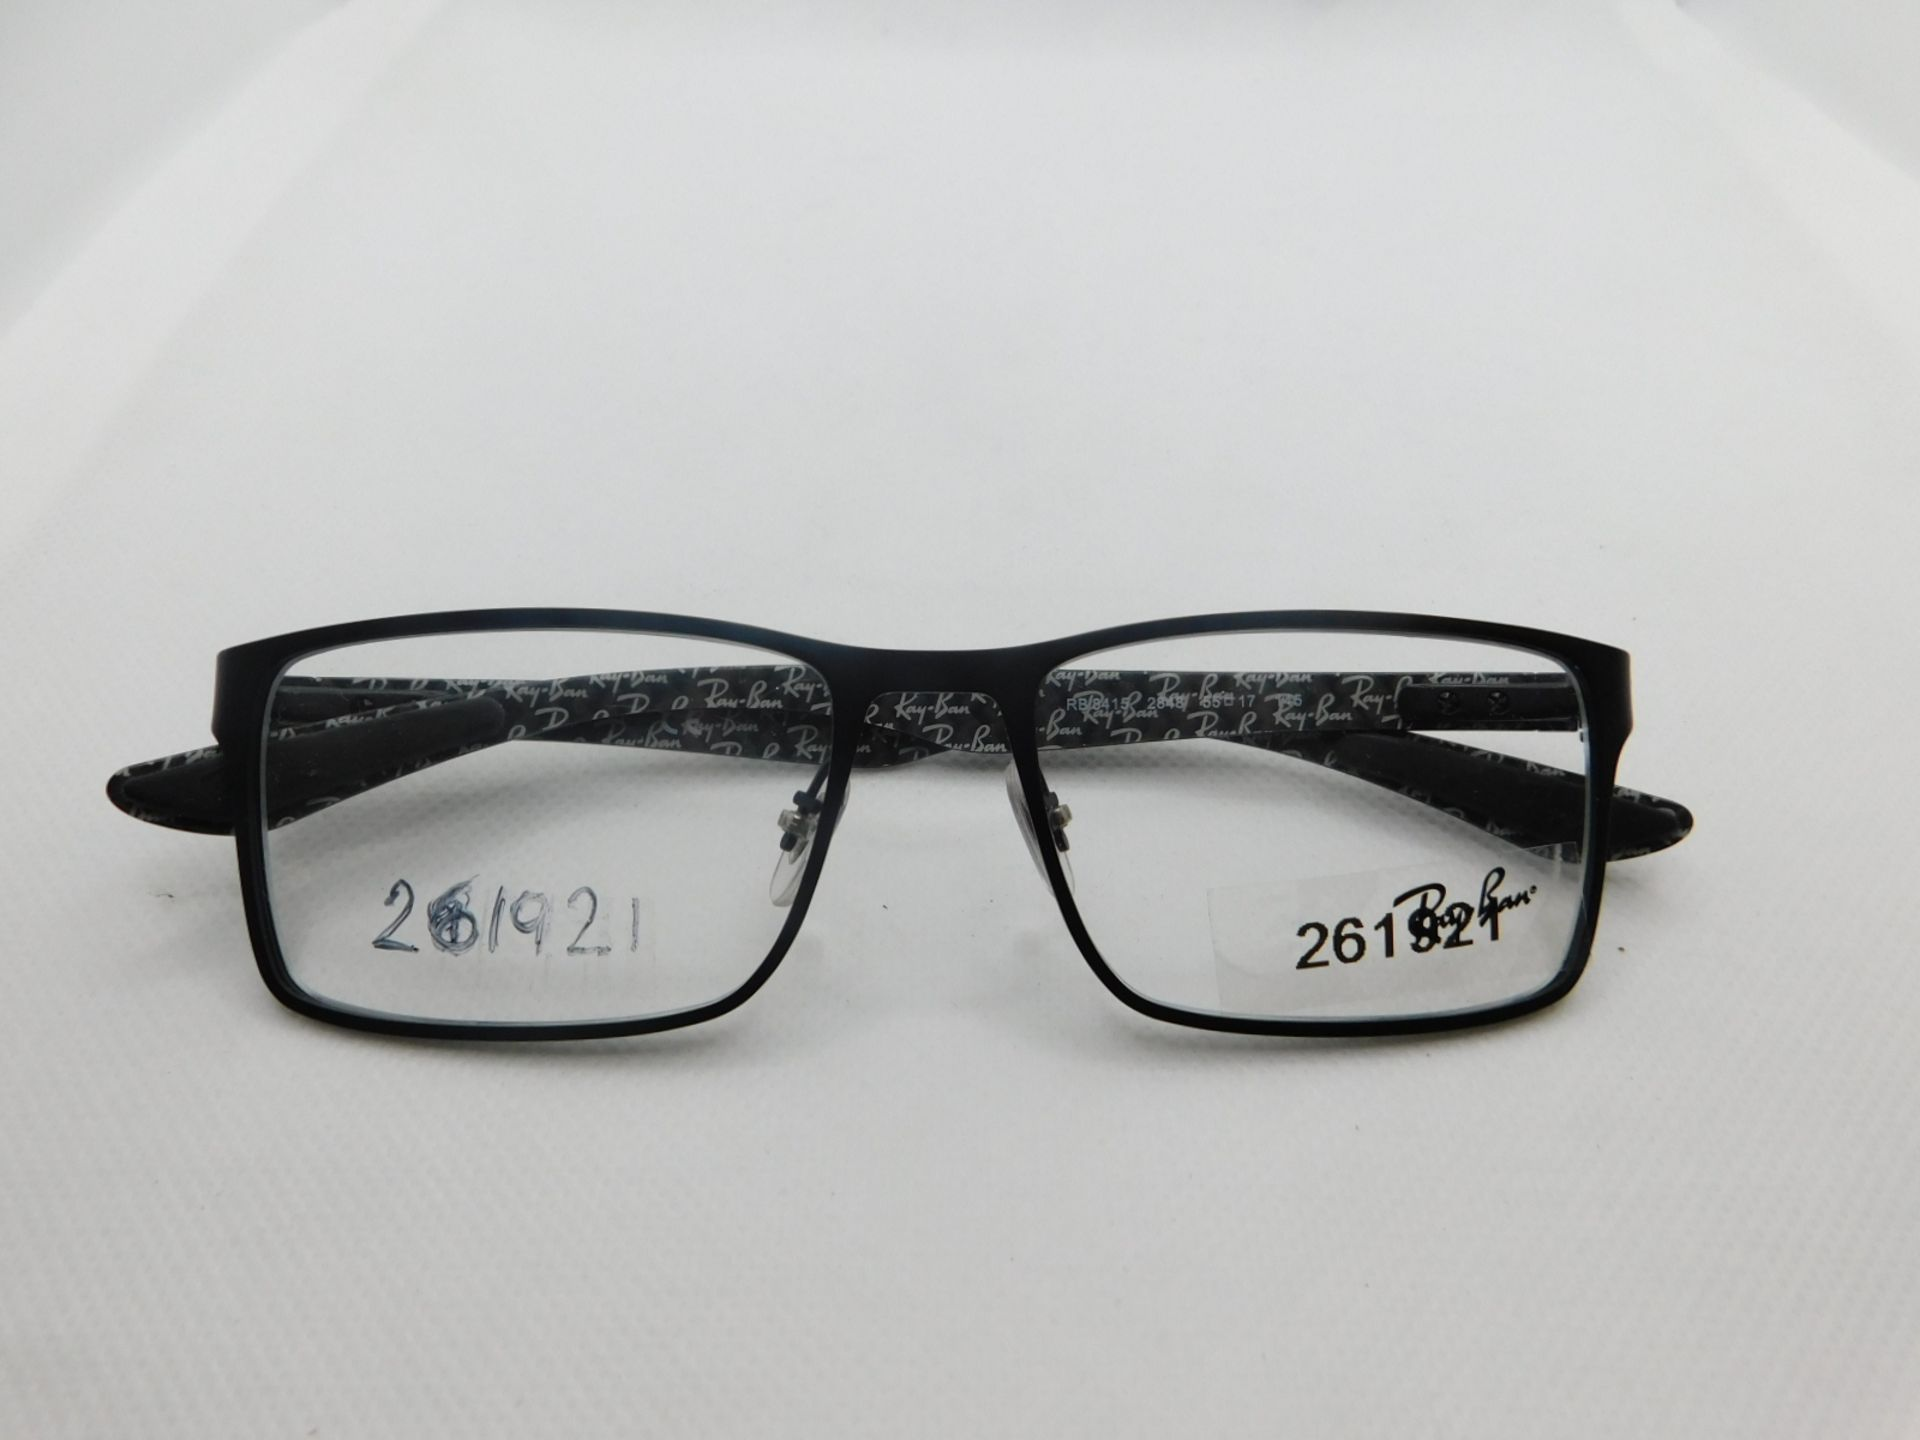 1 PAIR OF RAY-BAN GLASSES FRAME MODEL RB8415 RRP £119